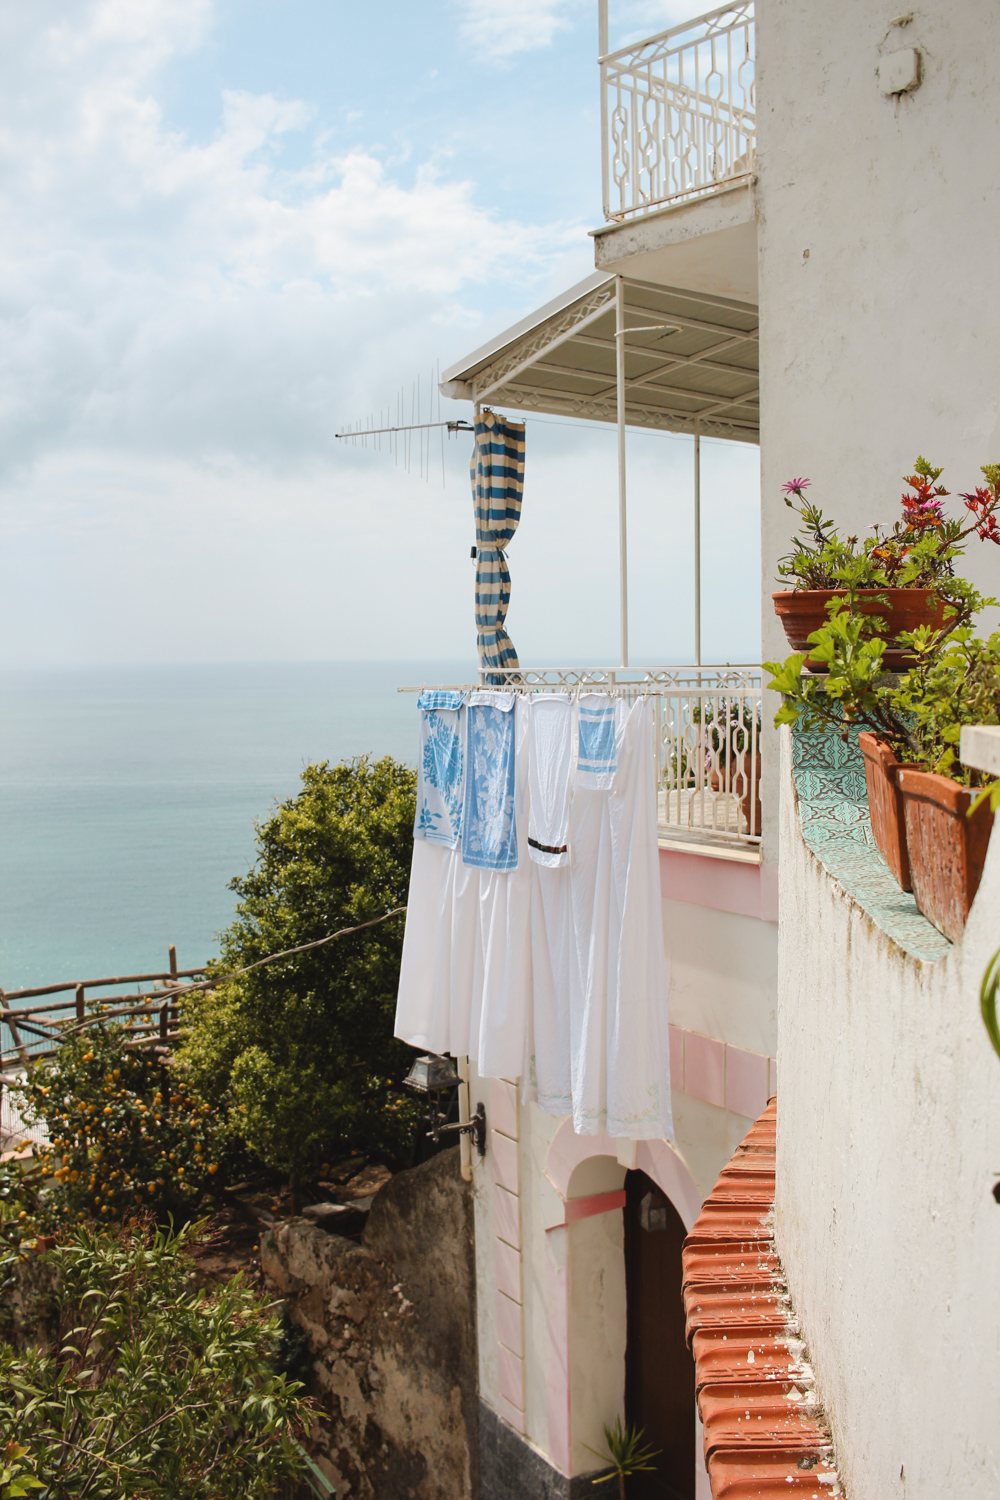 Hanging Laundry in Praiano, Amalfi Coast. Italy